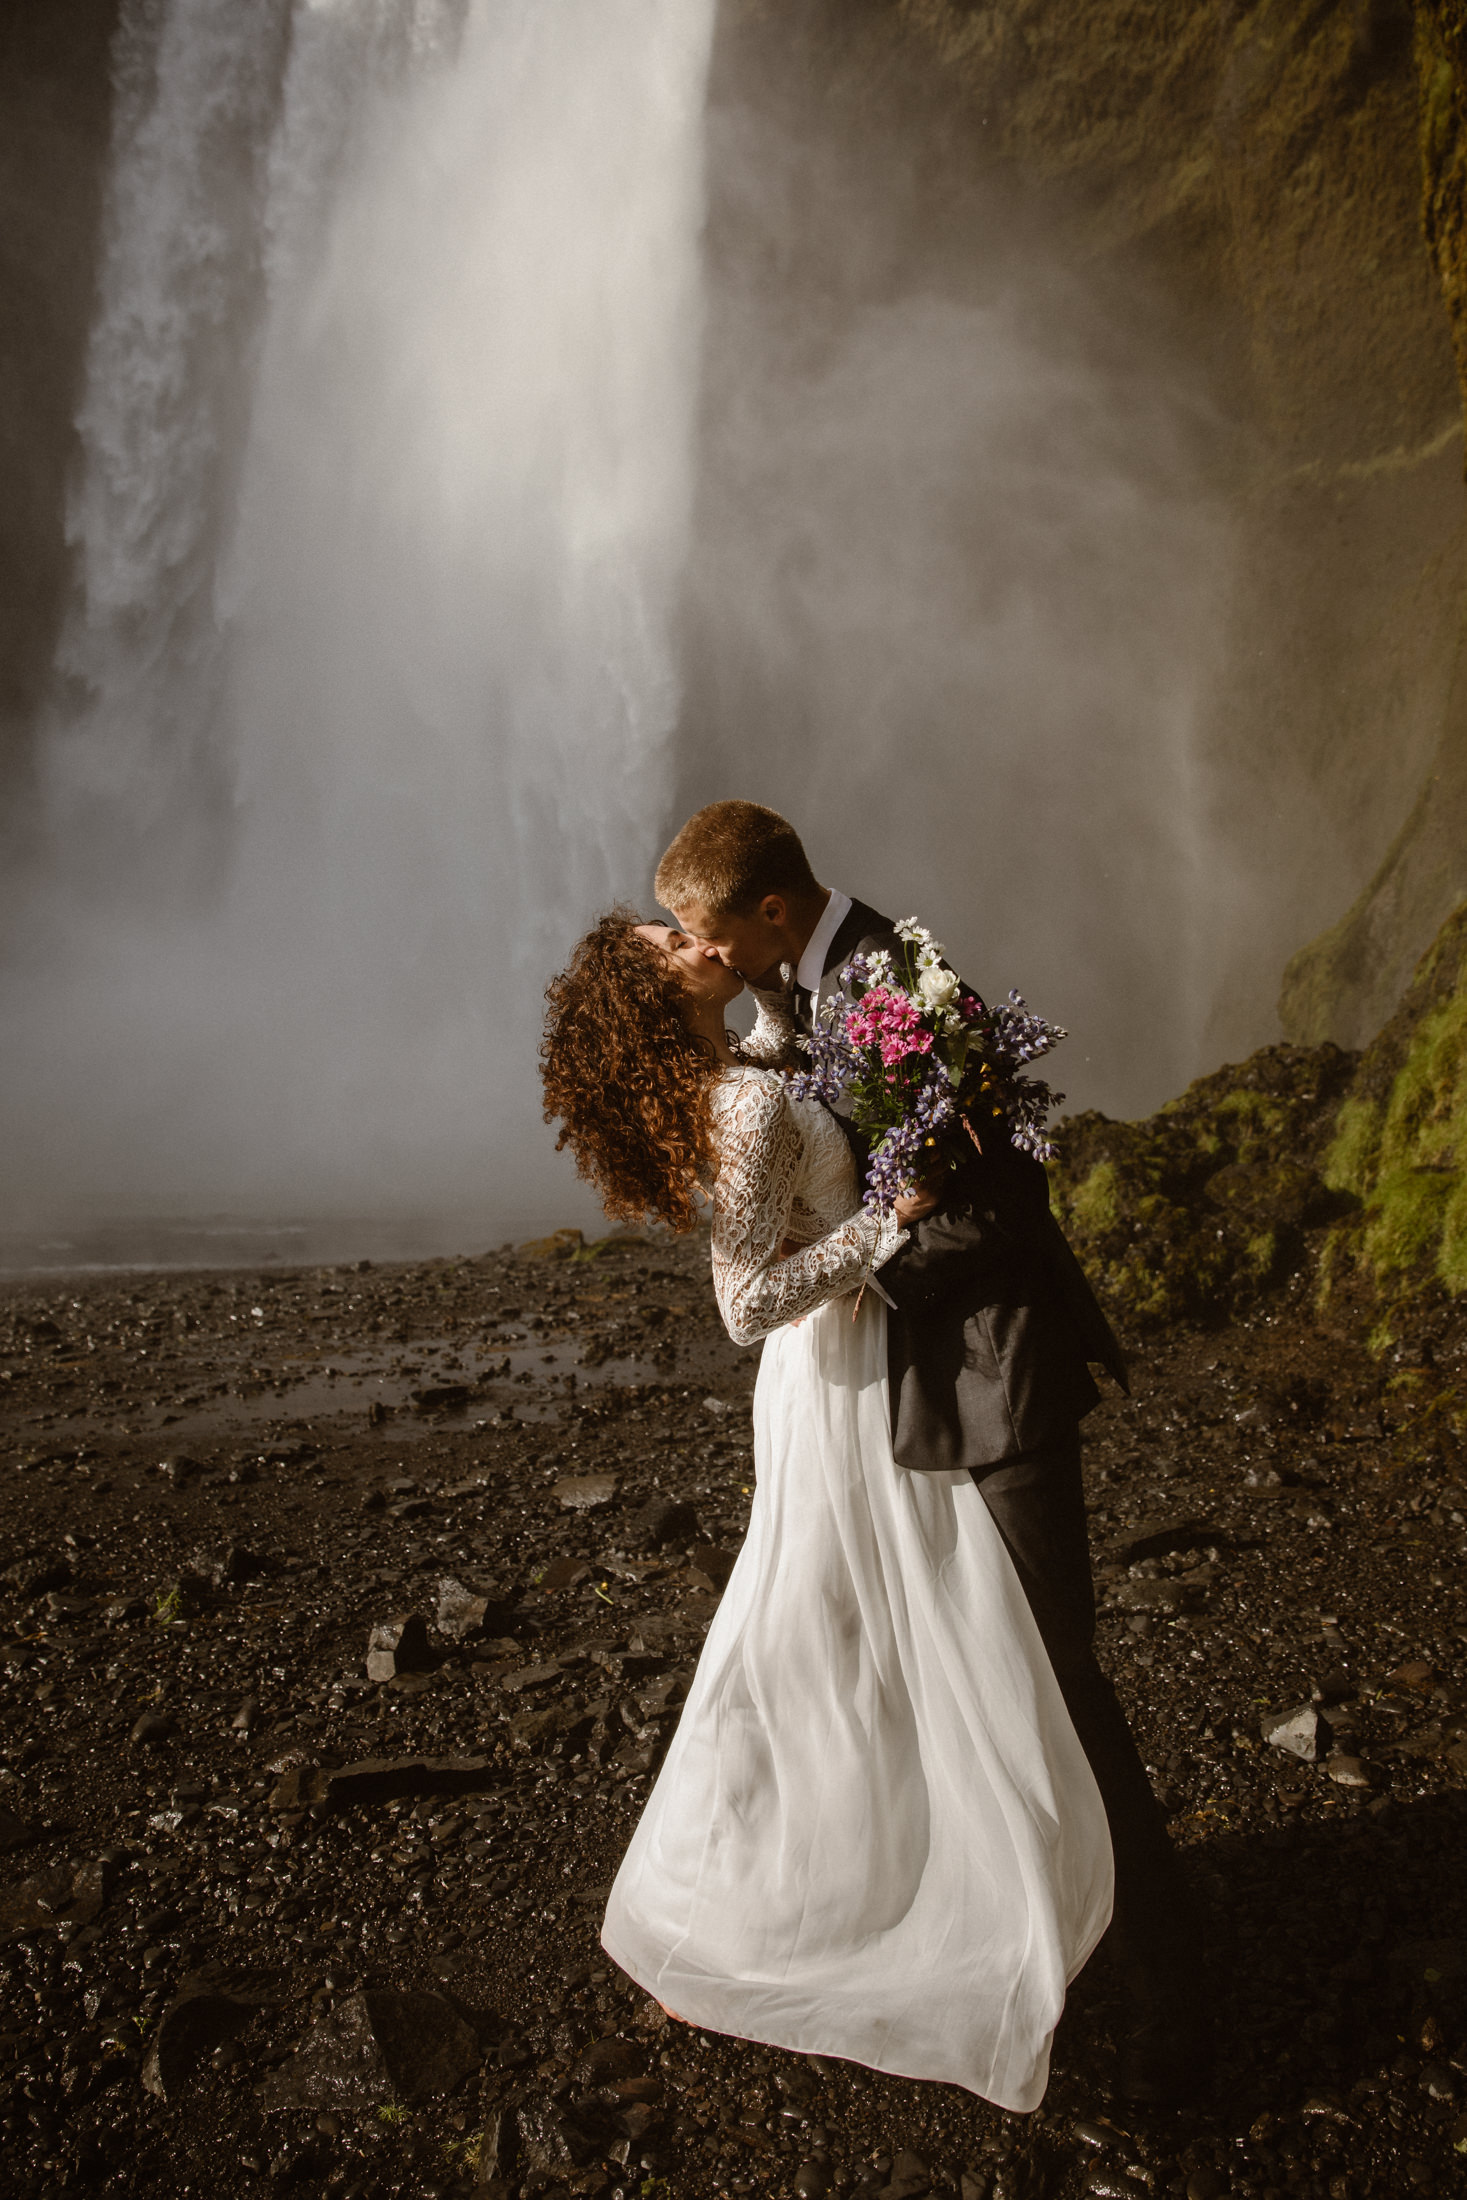 A bride and groom kiss at the base of a waterfall. Why should you elope in Iceland? Just imagine, being surrounded by volcanic rocks, mountains, glaciers, towering cliffs, black beaches and giant waterfalls!